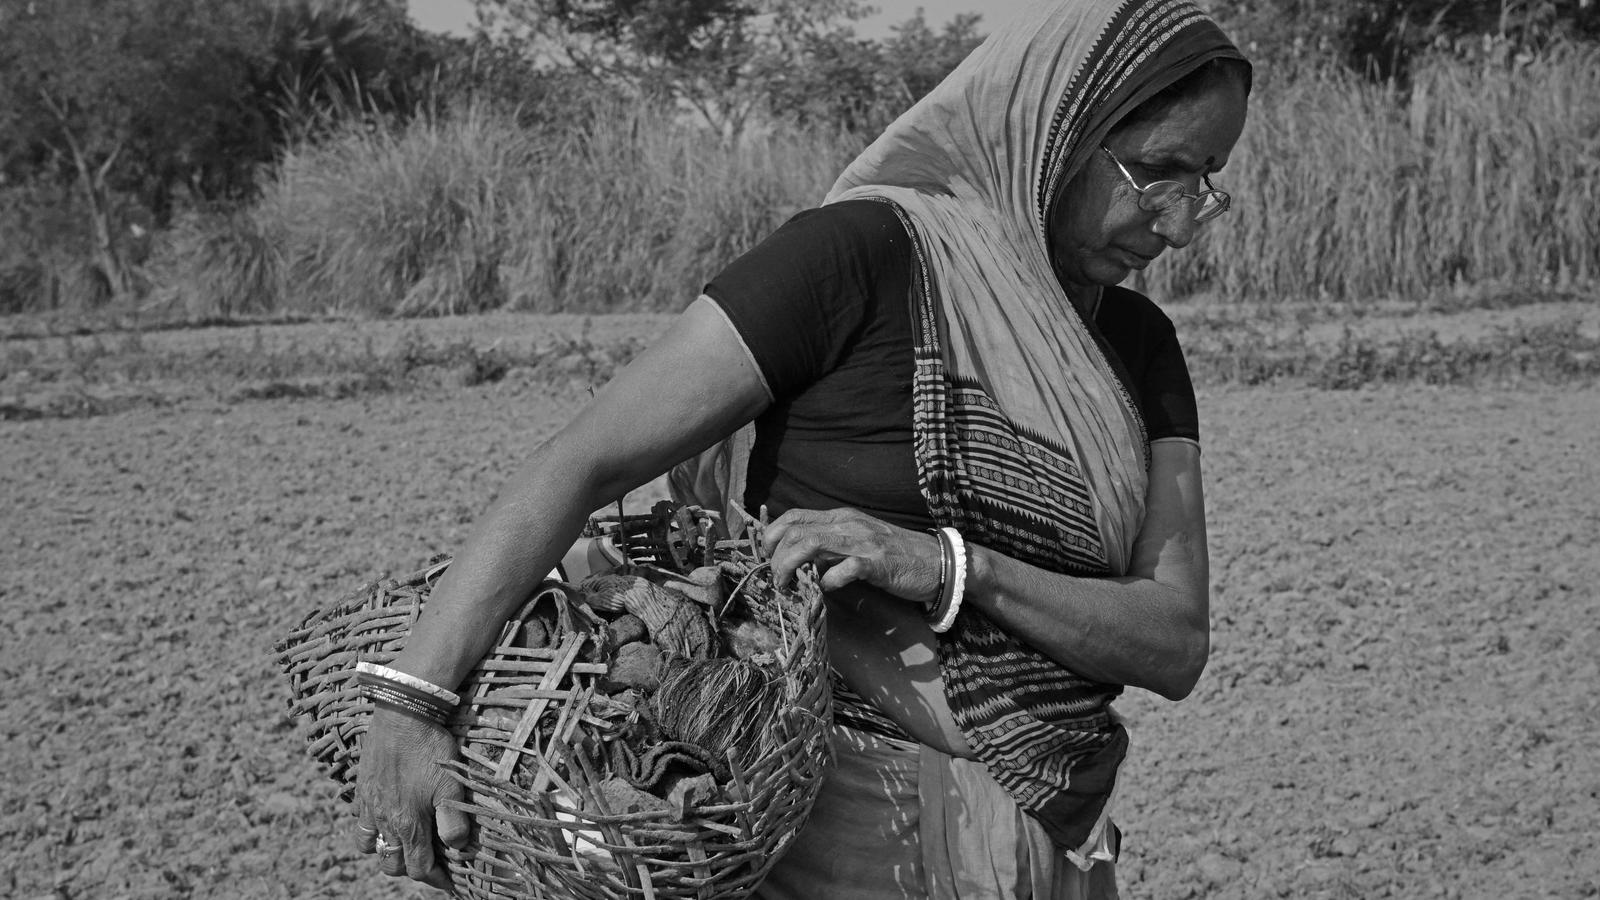 Meenadevi carrying dried waste and human excreta in a partially broken bamboo basket to a manure pit in a field 4km away